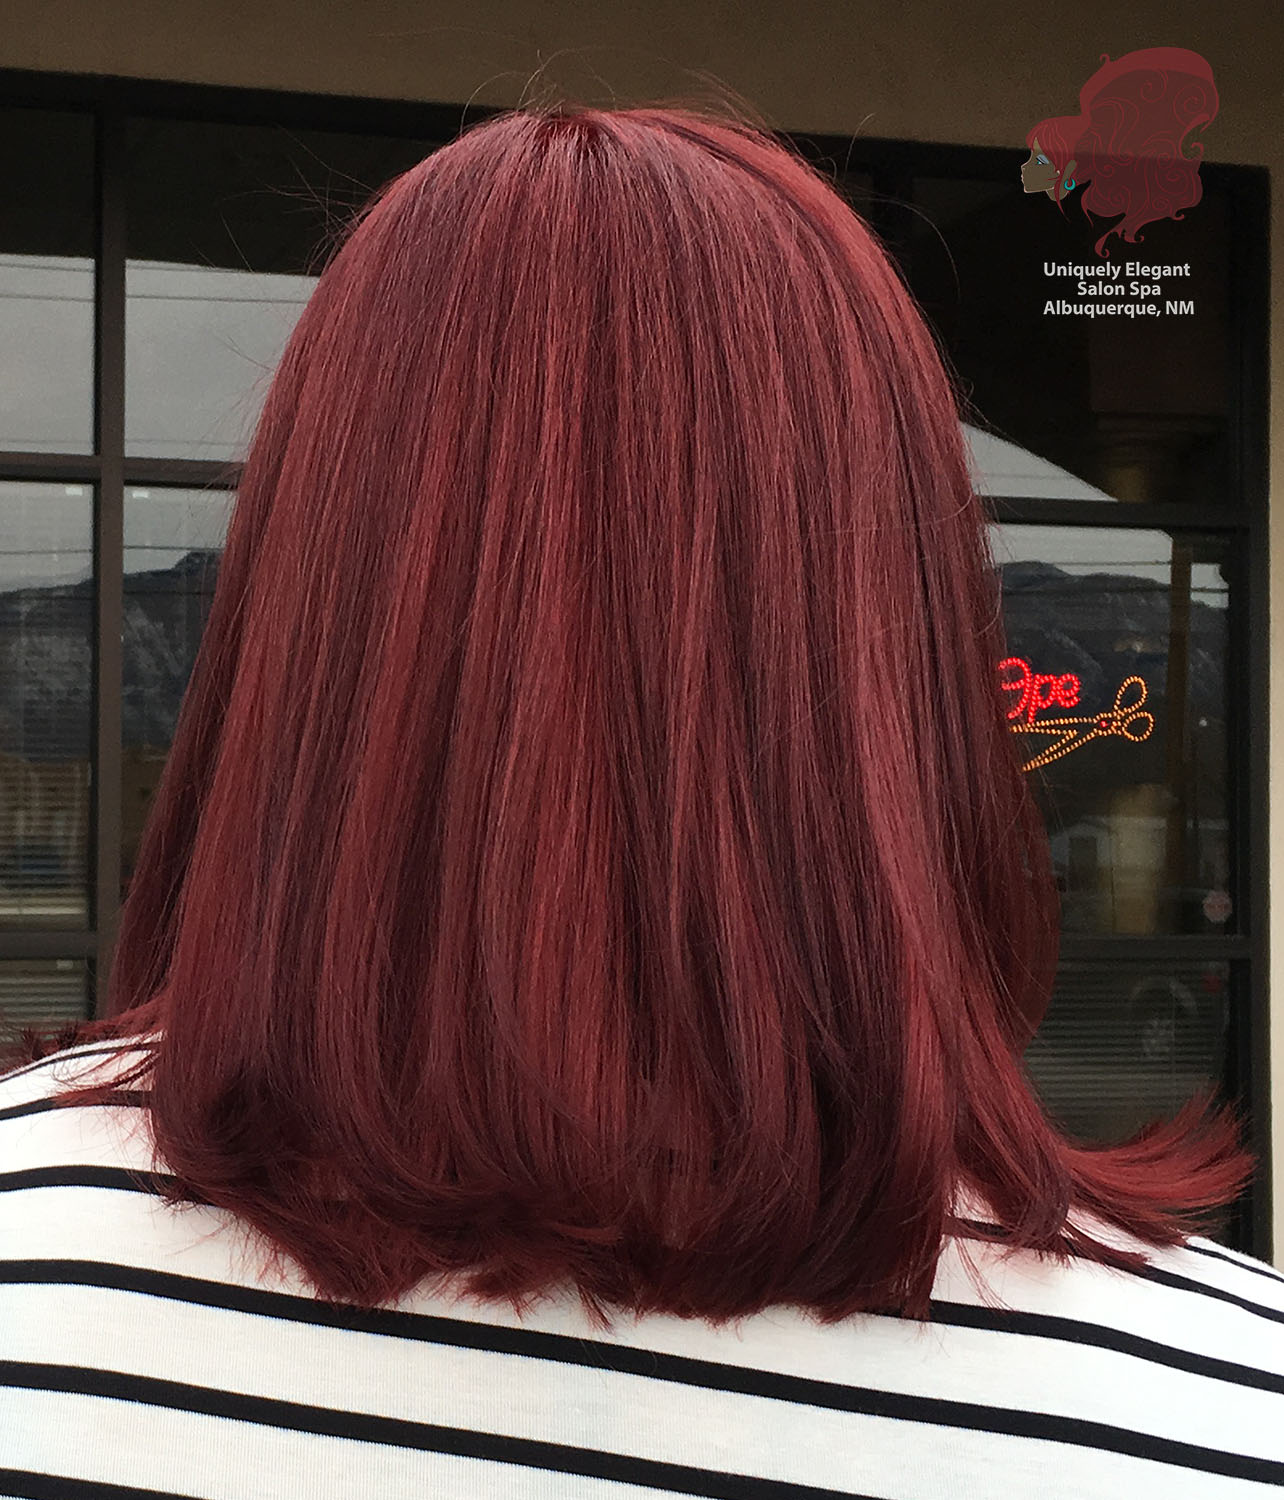 Many Images And Pics Of All Types Of Haircuts And Hairstyles In Albuquerque Nm